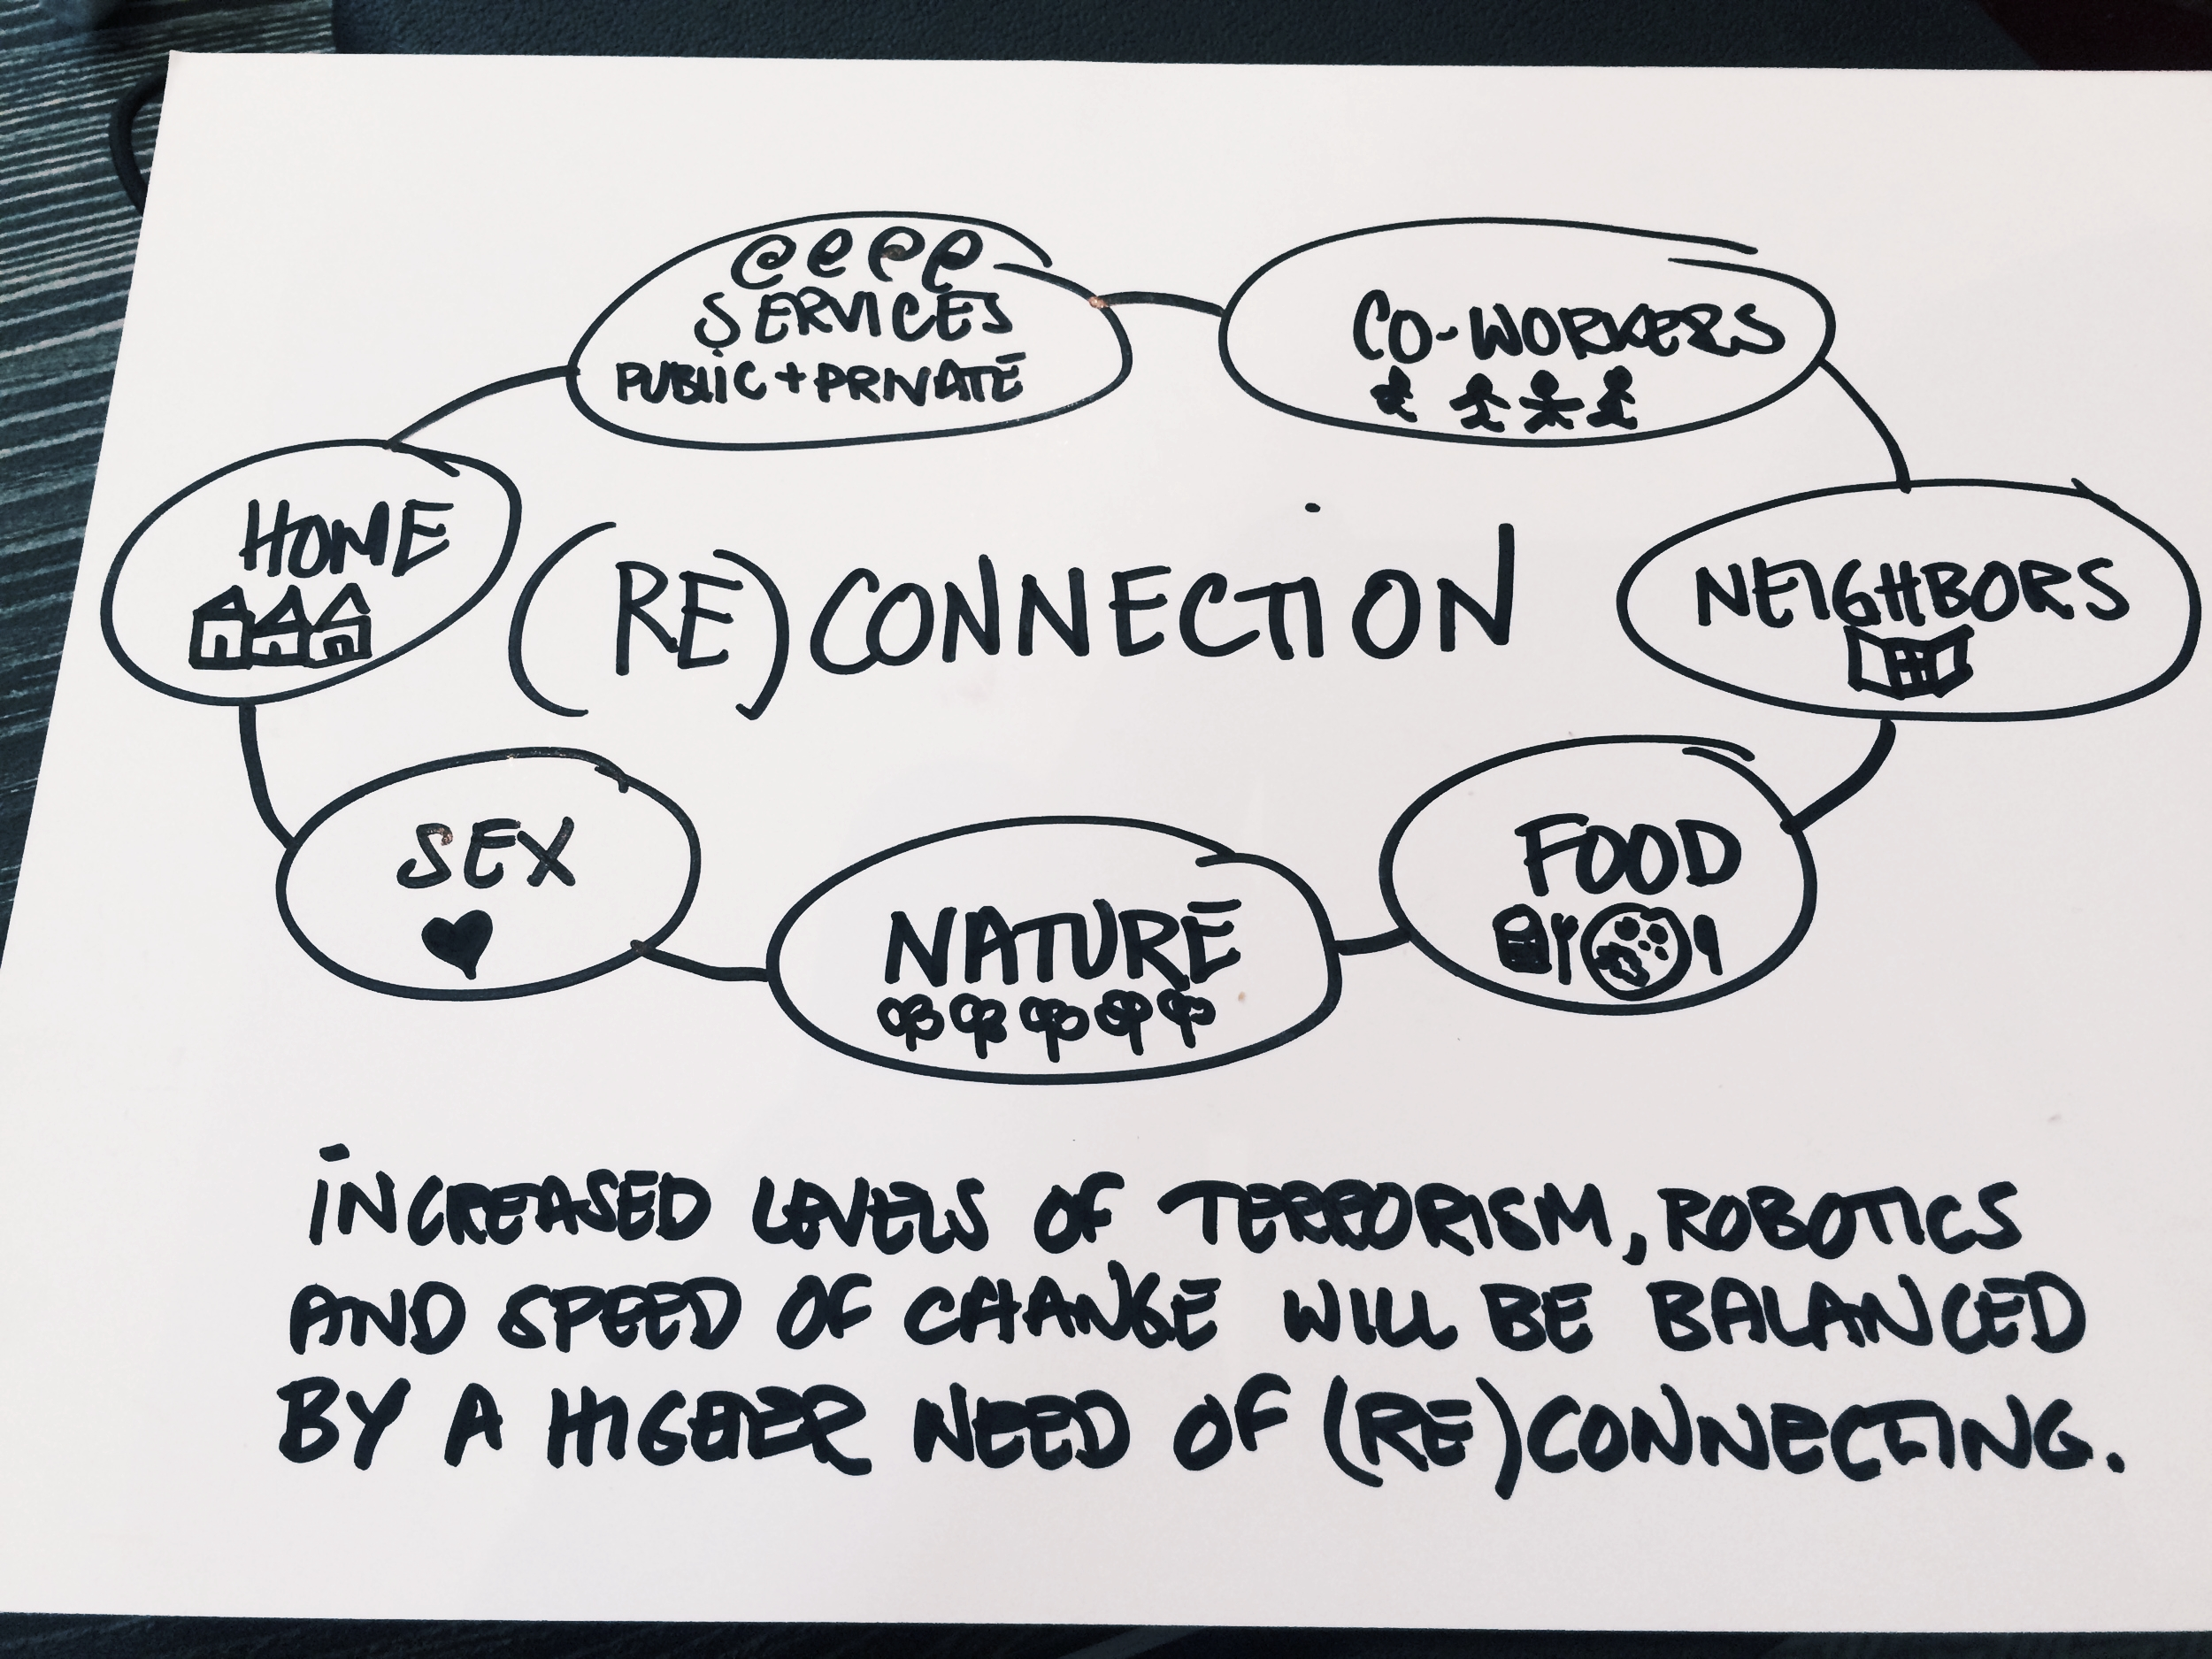 The trend for 2025: (re)connection.